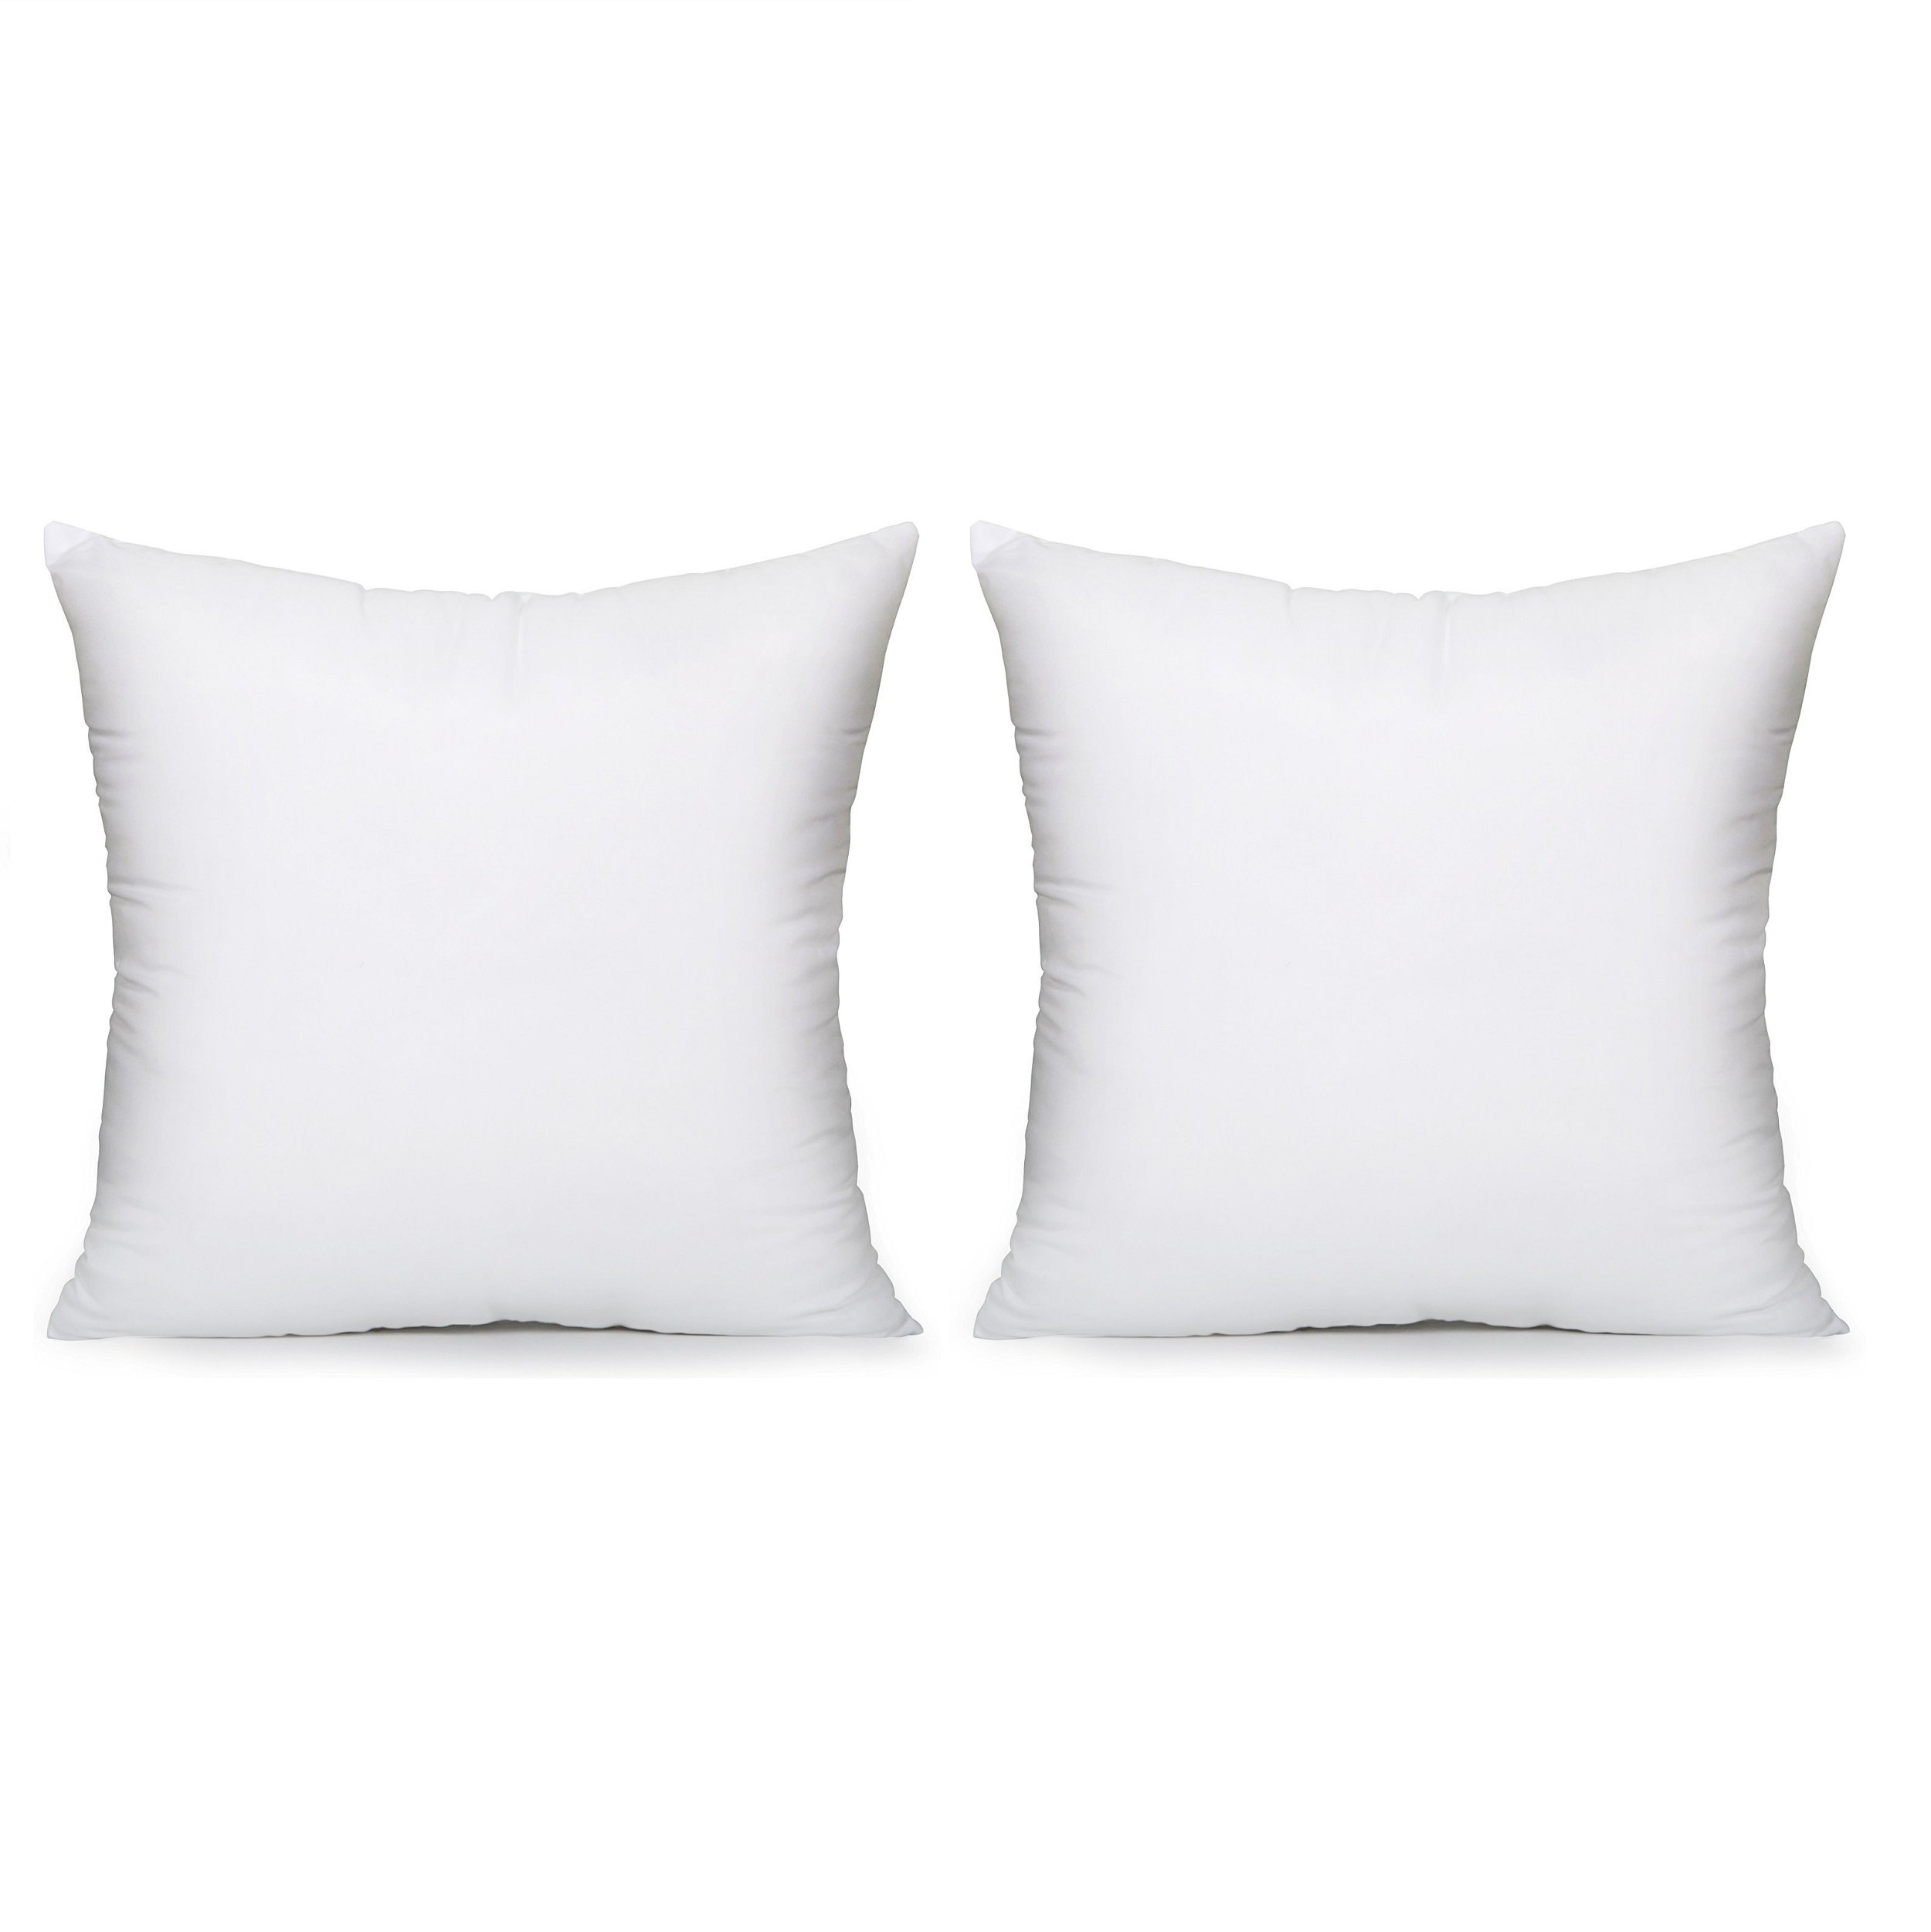 Acanva Hypoallergenic Pillow Insert Form Cushion Euro Sham, Square, 20'' L x 20'' W, Set of 2